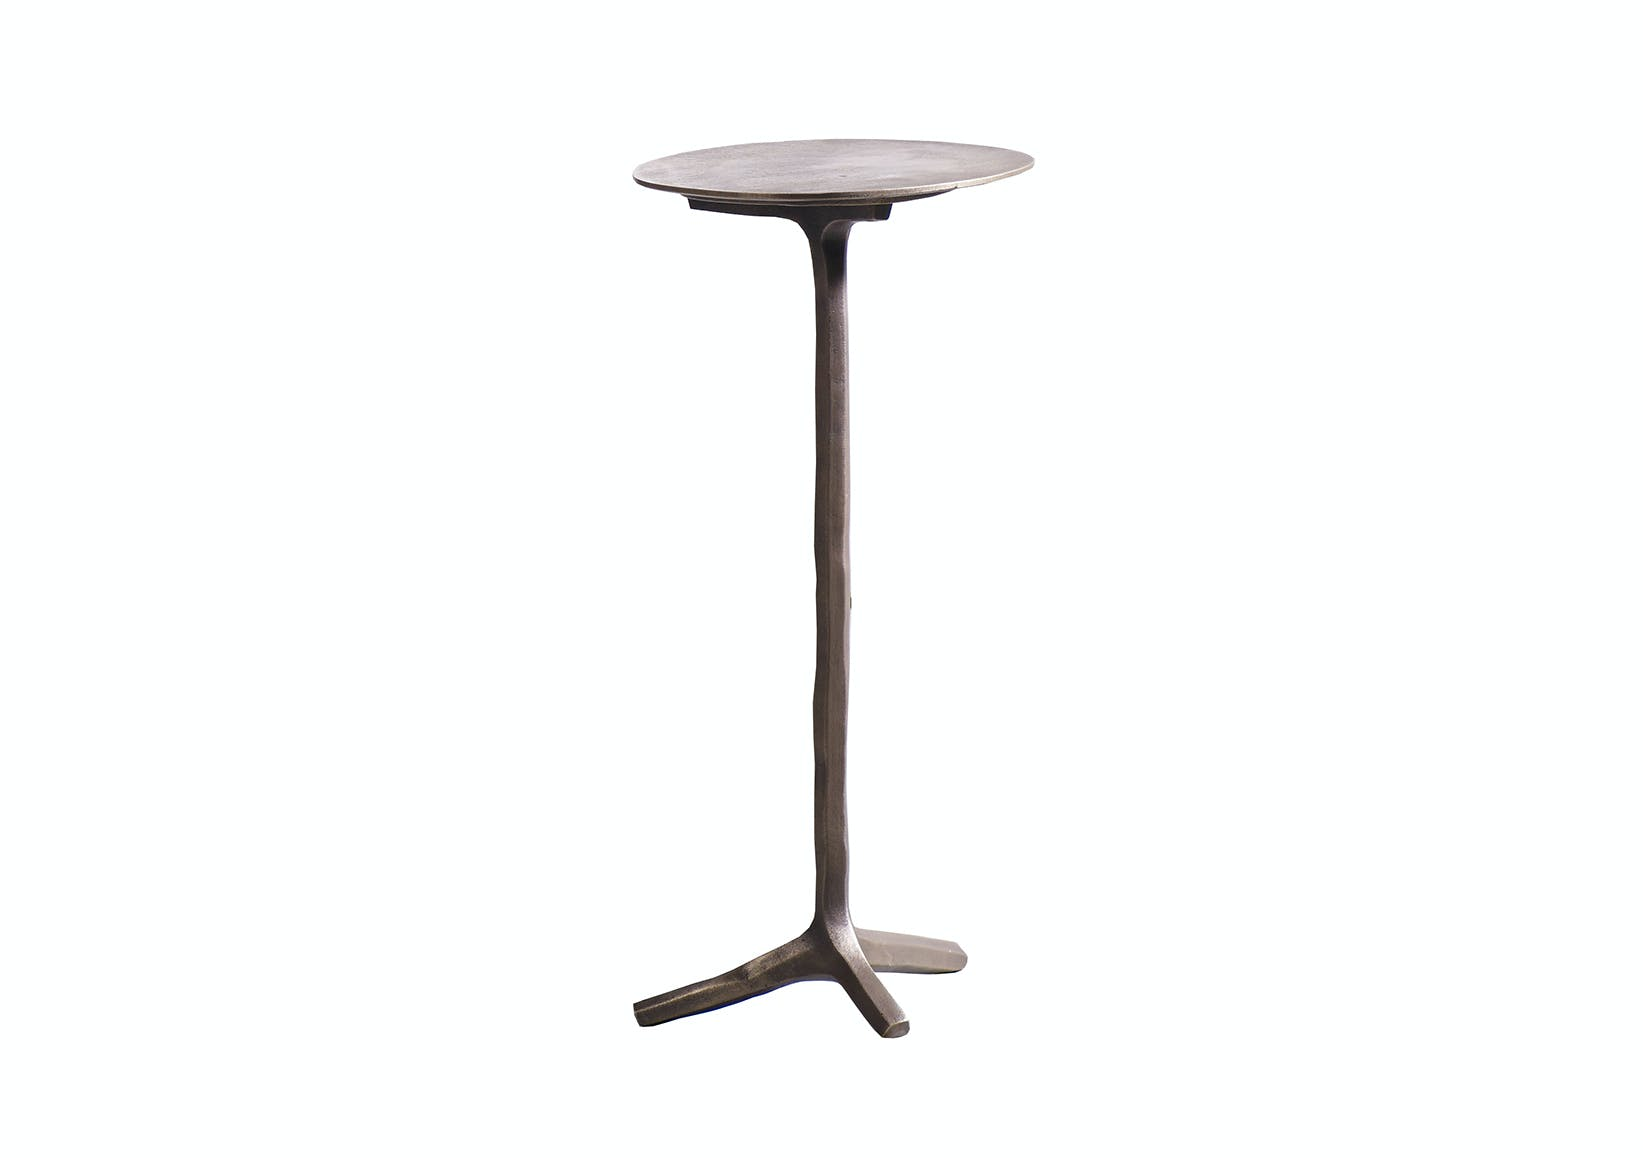 Klink Table Piet Boon 2 Hl